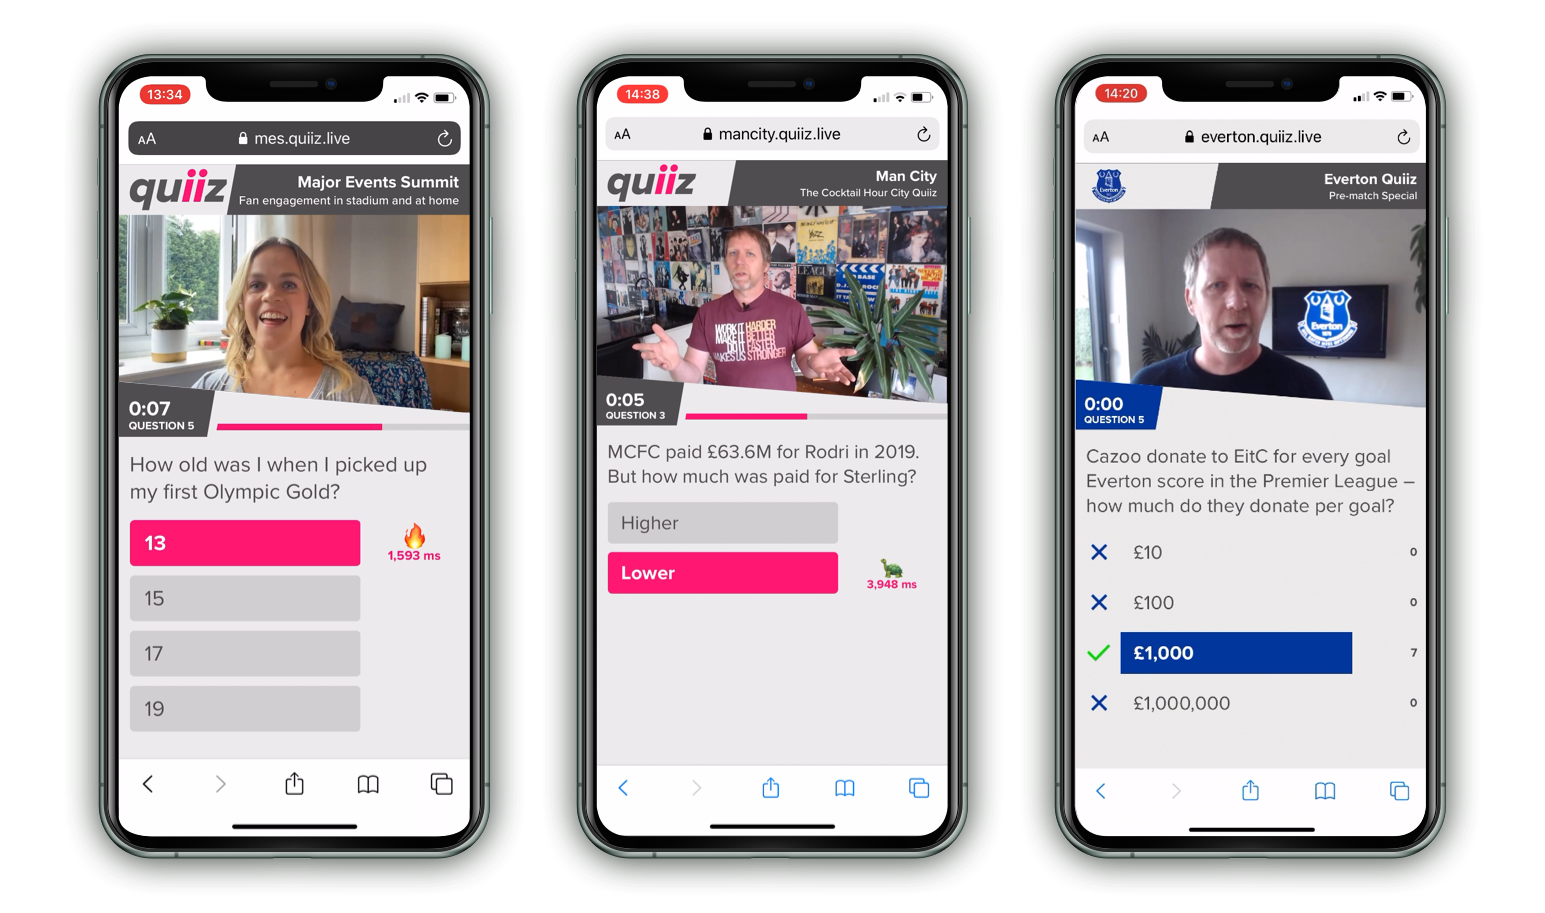 Hundreds or thousands of people can play Quiiz on their mobile phones without downloading an app